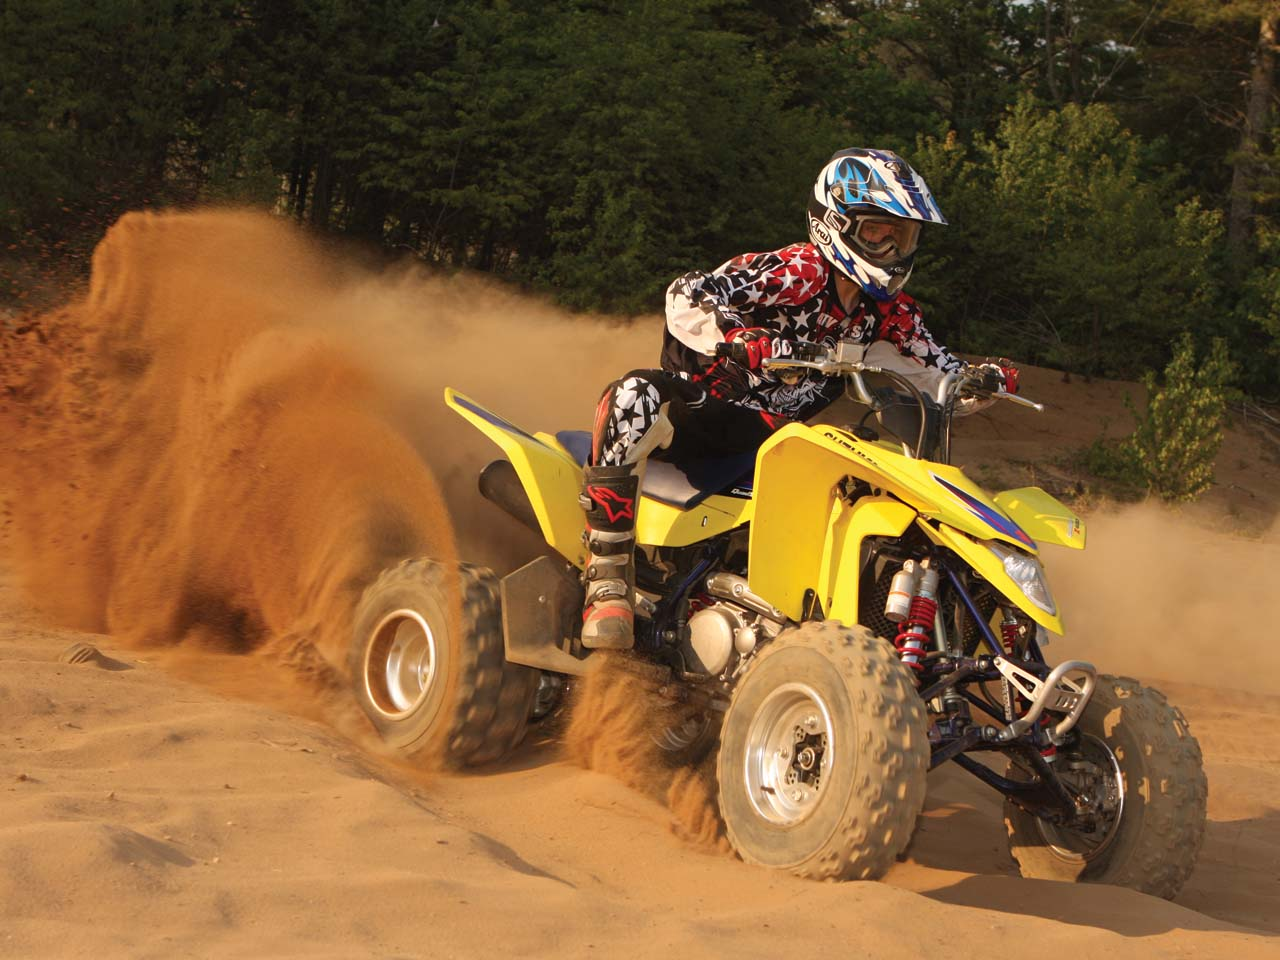 Playmate of the Year - The Suzuki LTZ 400 | ATV Illustrated